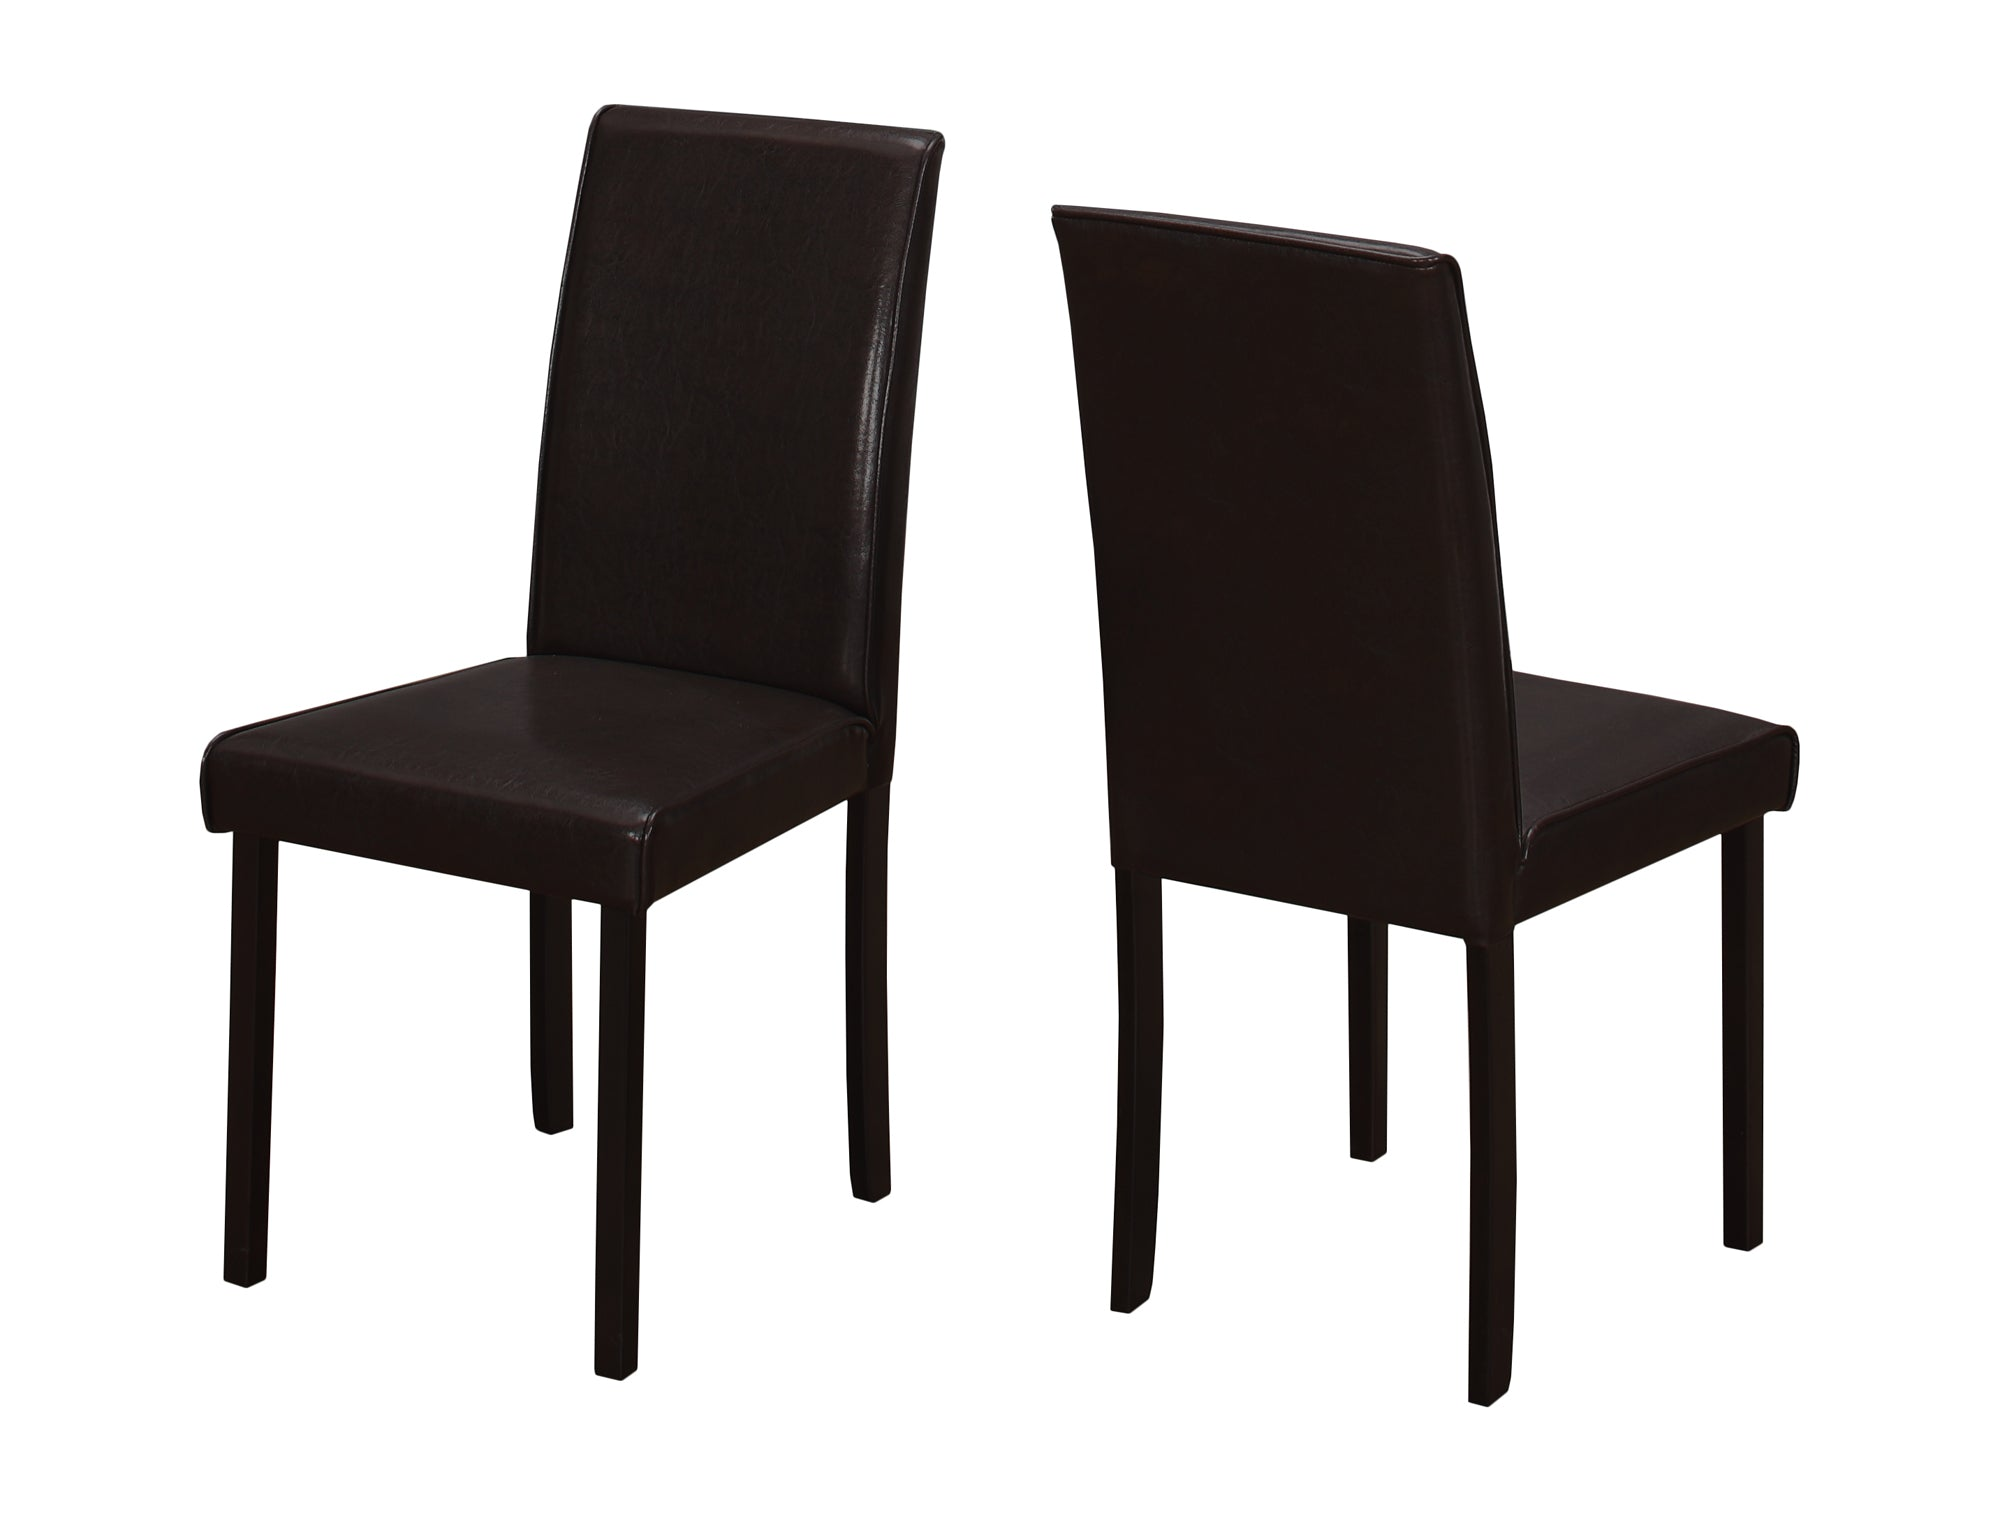 "44'.5"" x 35'.5"" x 72"" Cappuccino, Foam, Solid Wood, Leather-Look - Dining Chairs 2pcs"